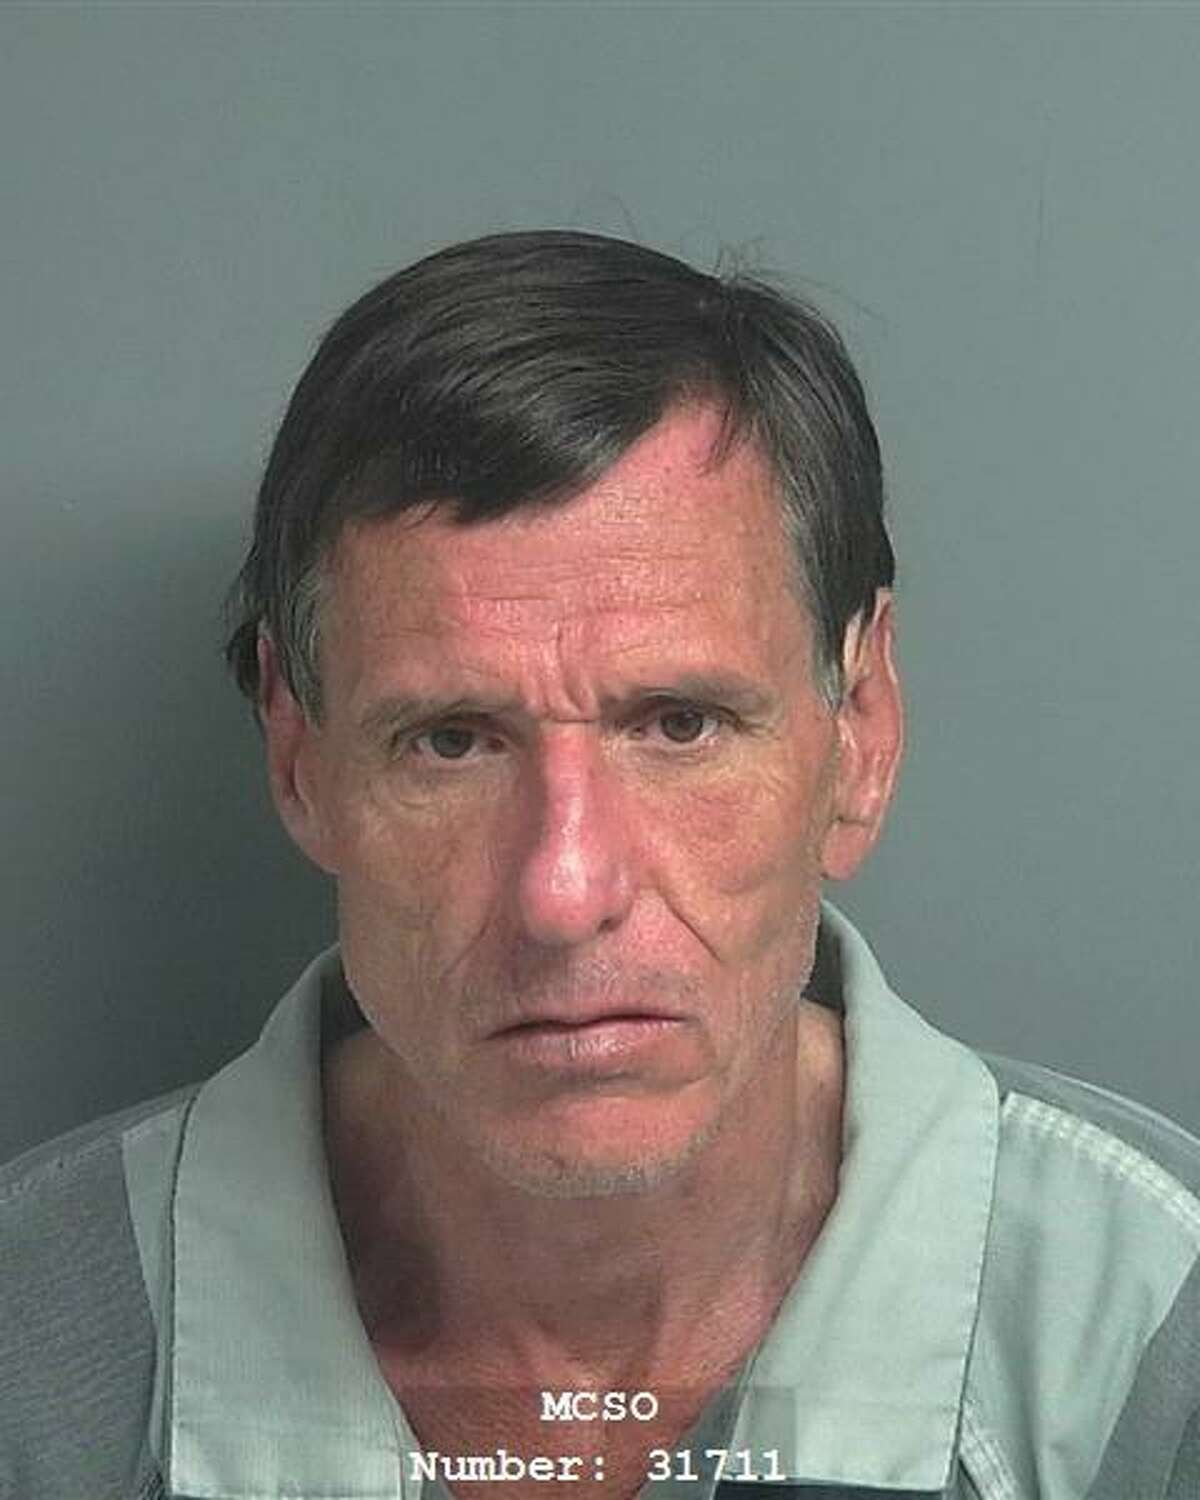 James Ray Bates, 65, of Conroe, was convicted Wednesday of failure to comply with requirements as a sex offender, a second-degree felony.